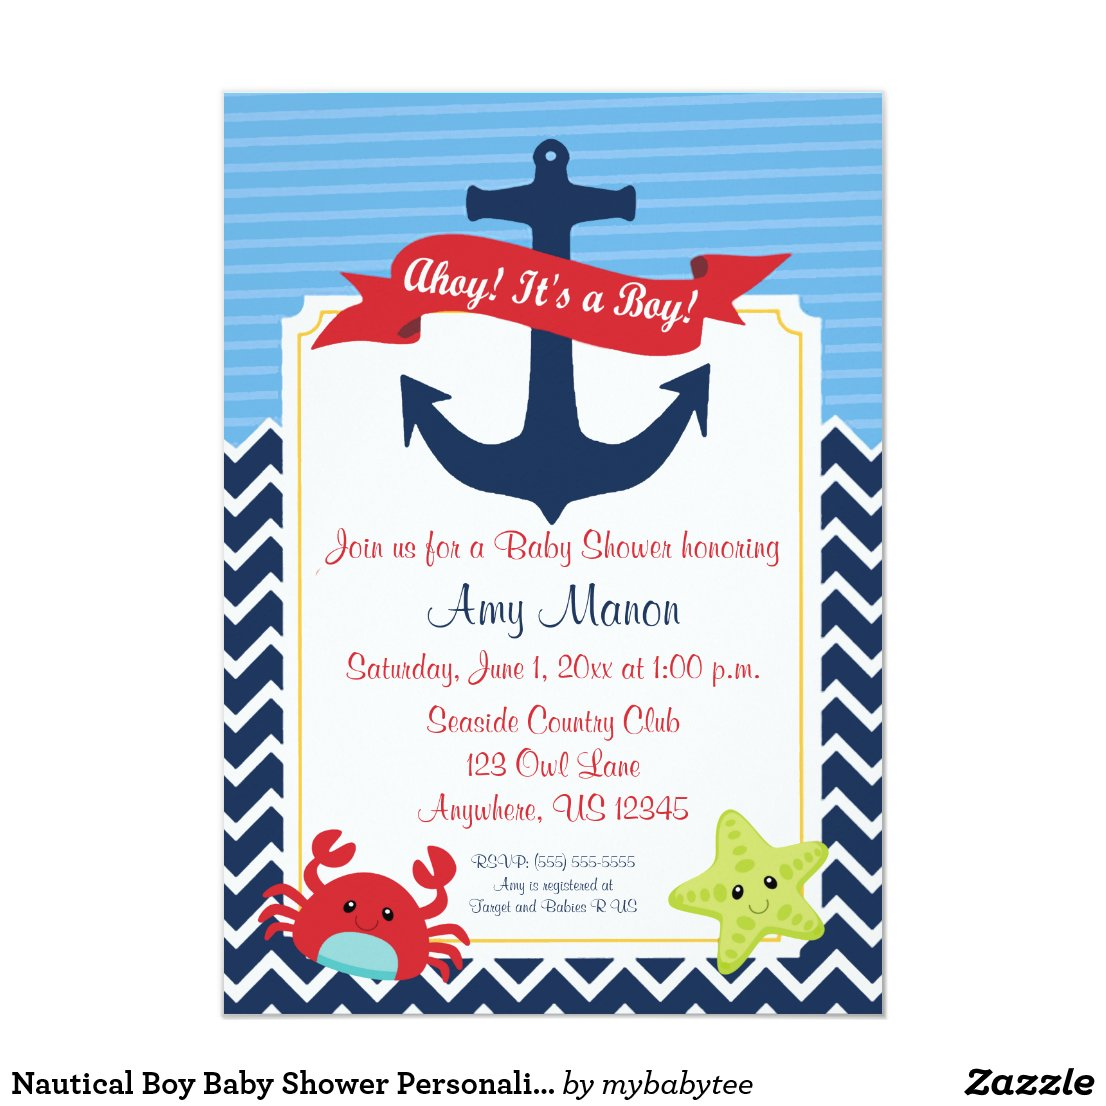 Nautical Boy Baby Shower Personalized Invitation